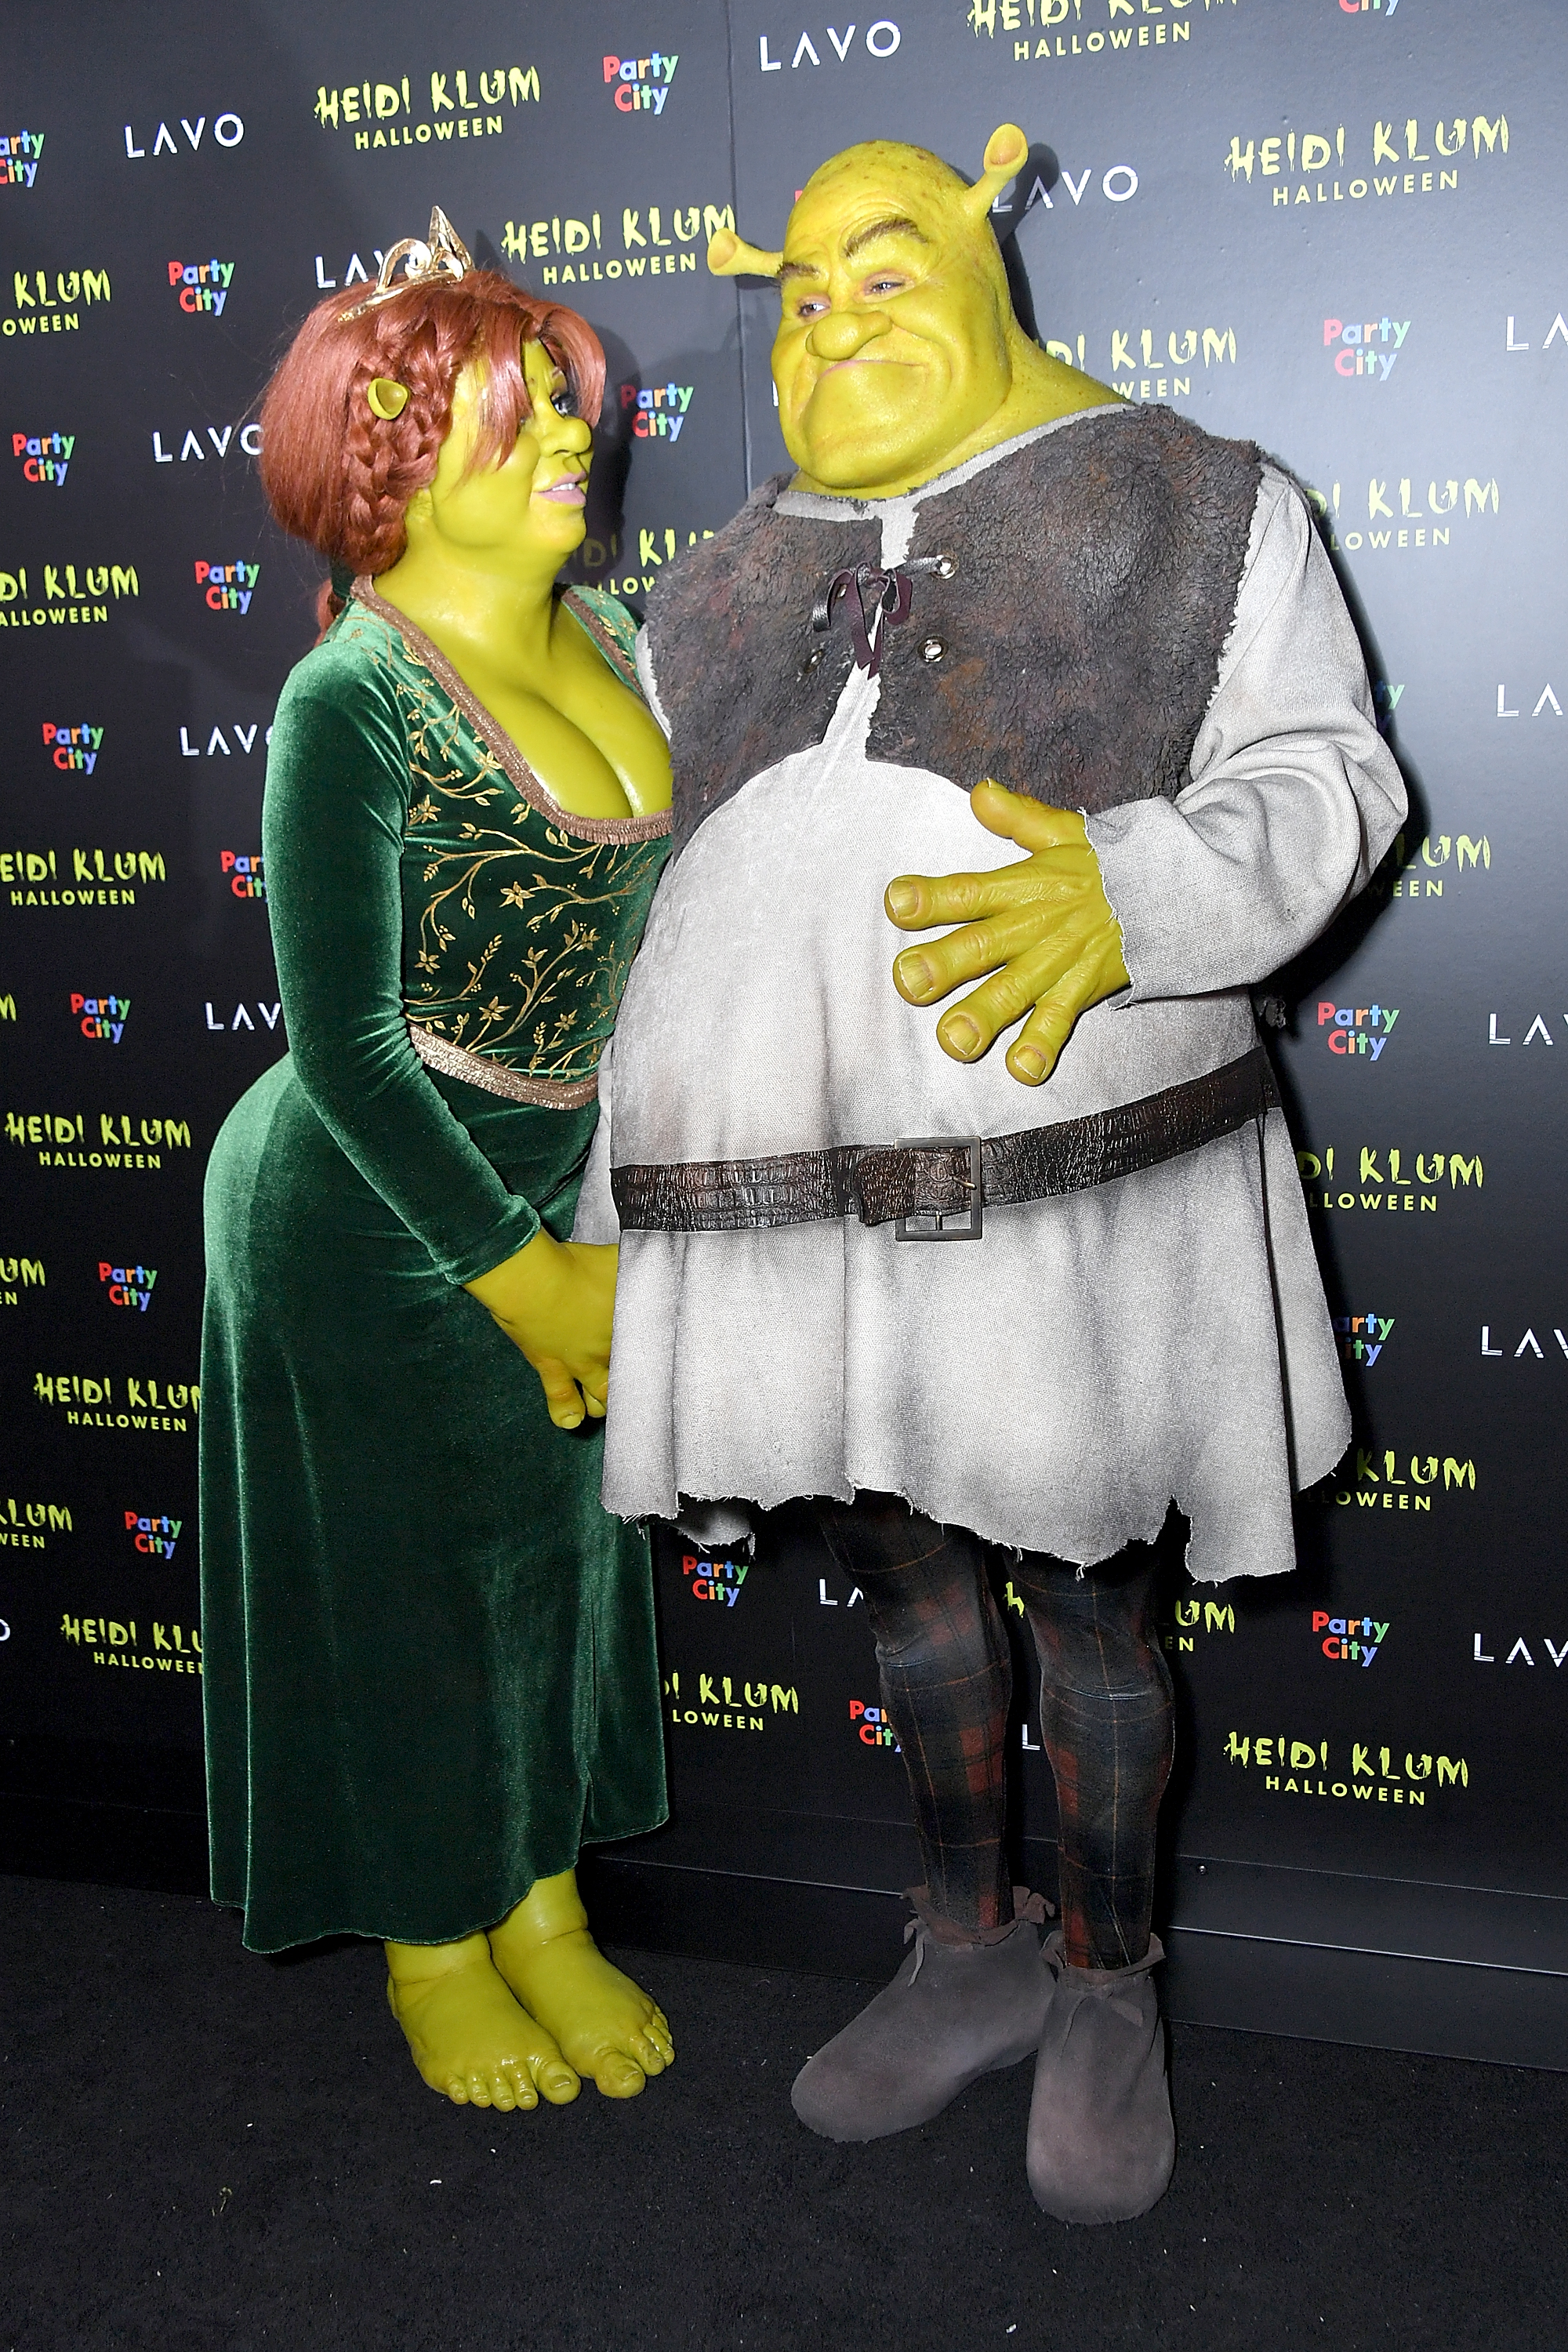 NEW YORK, NY - OCTOBER 31:  Heidi Klum and Tom Kaulitz show up dressed as Princess Fiona and Shrek to Klum's 19th Annual Halloween Party at Lavo on October 31, 2018 in New York City.  (Photo by Michael Loccisano/Getty Images)